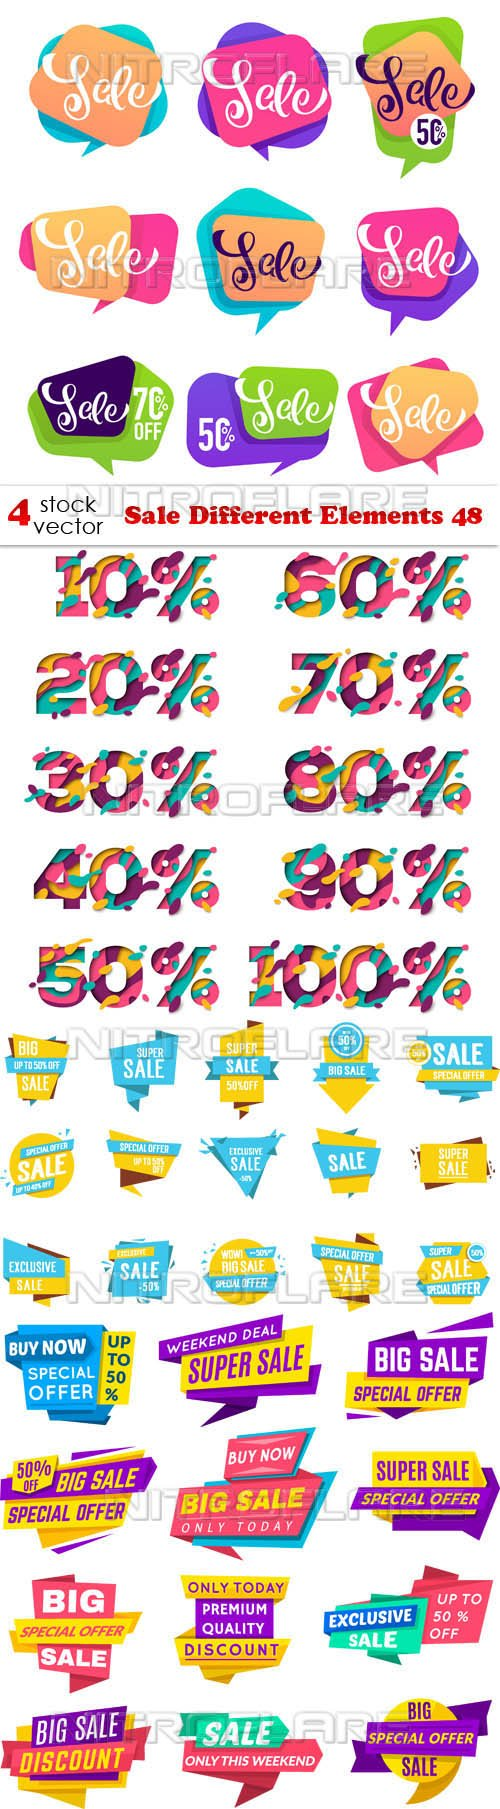 Vectors - Sale Different Elements 48